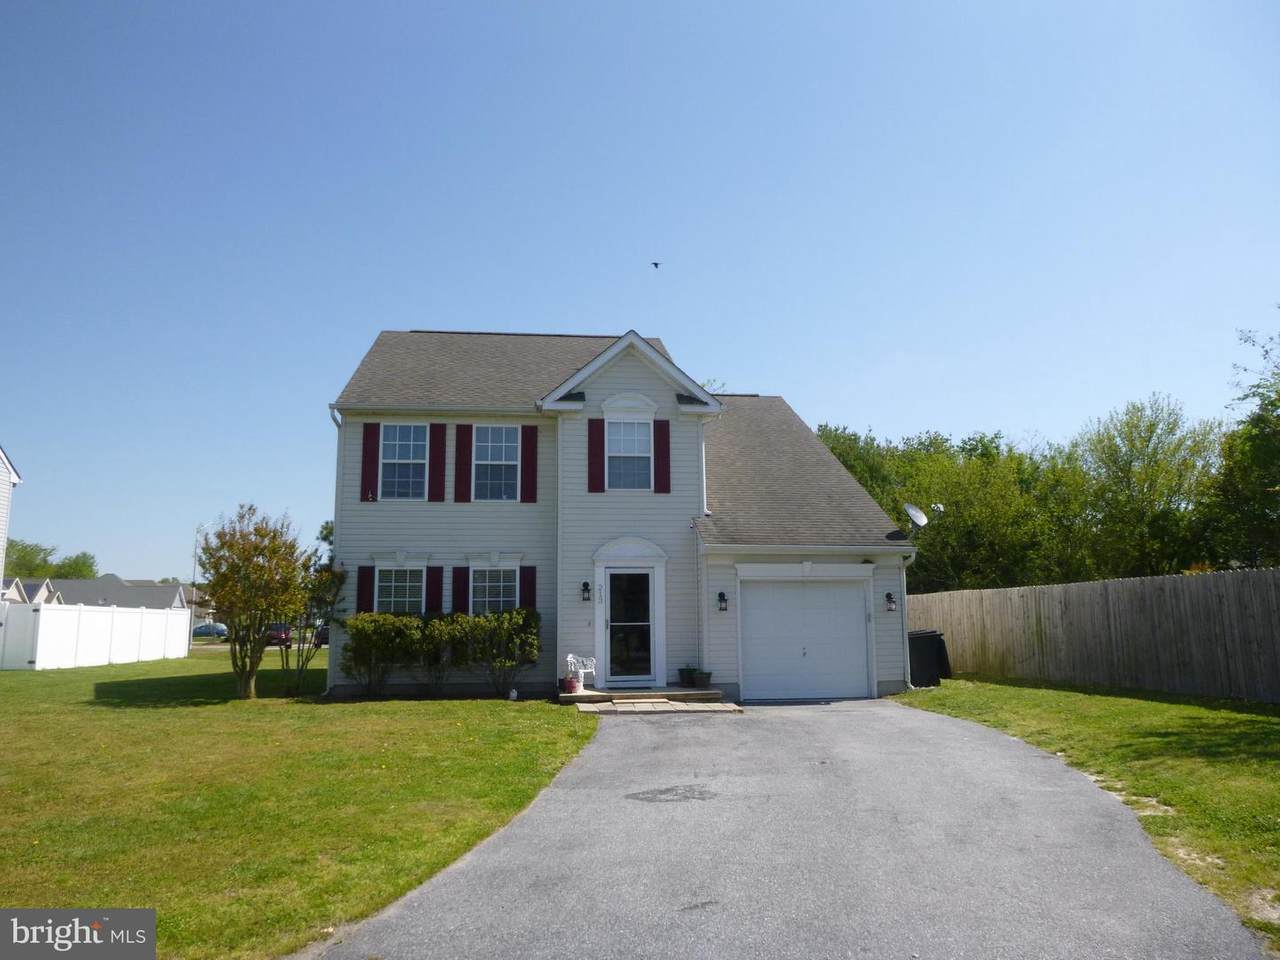 213 Donegal Court - Photo 1